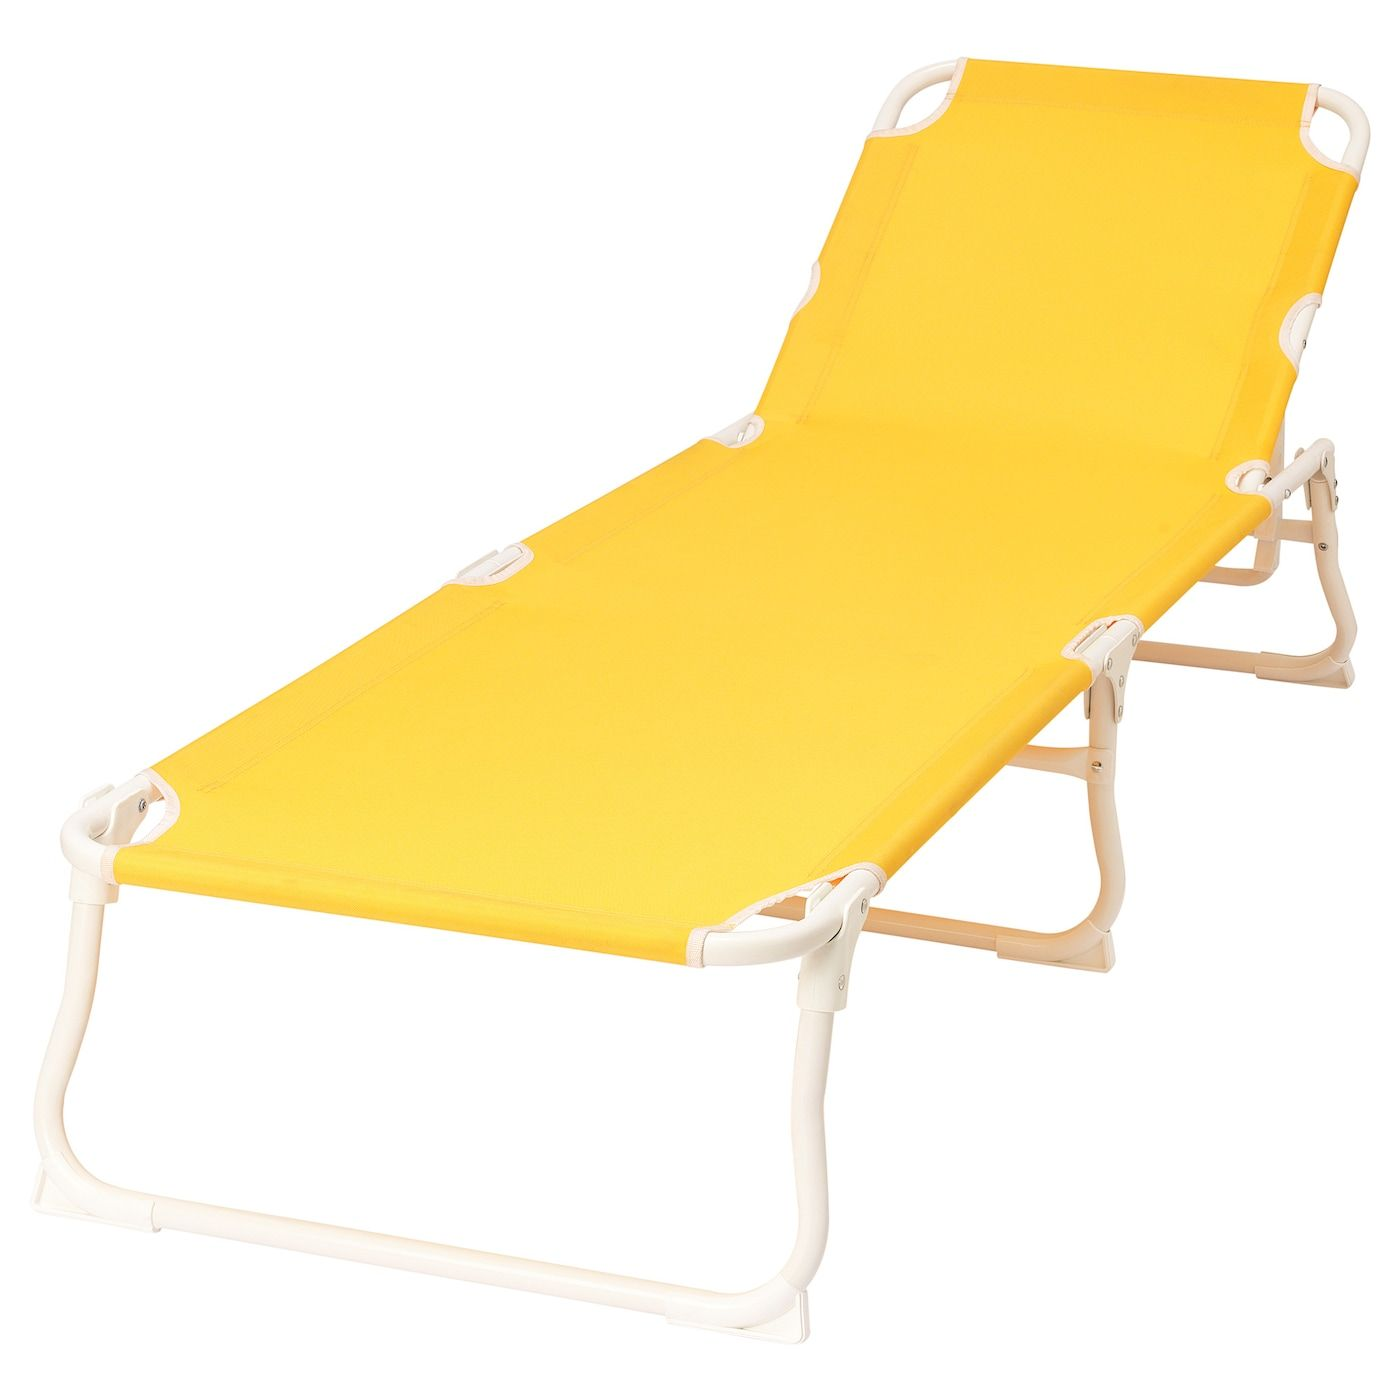 HÅMÖ Chaise - yellow - IKEA  Sun lounger, Outdoor folding chairs